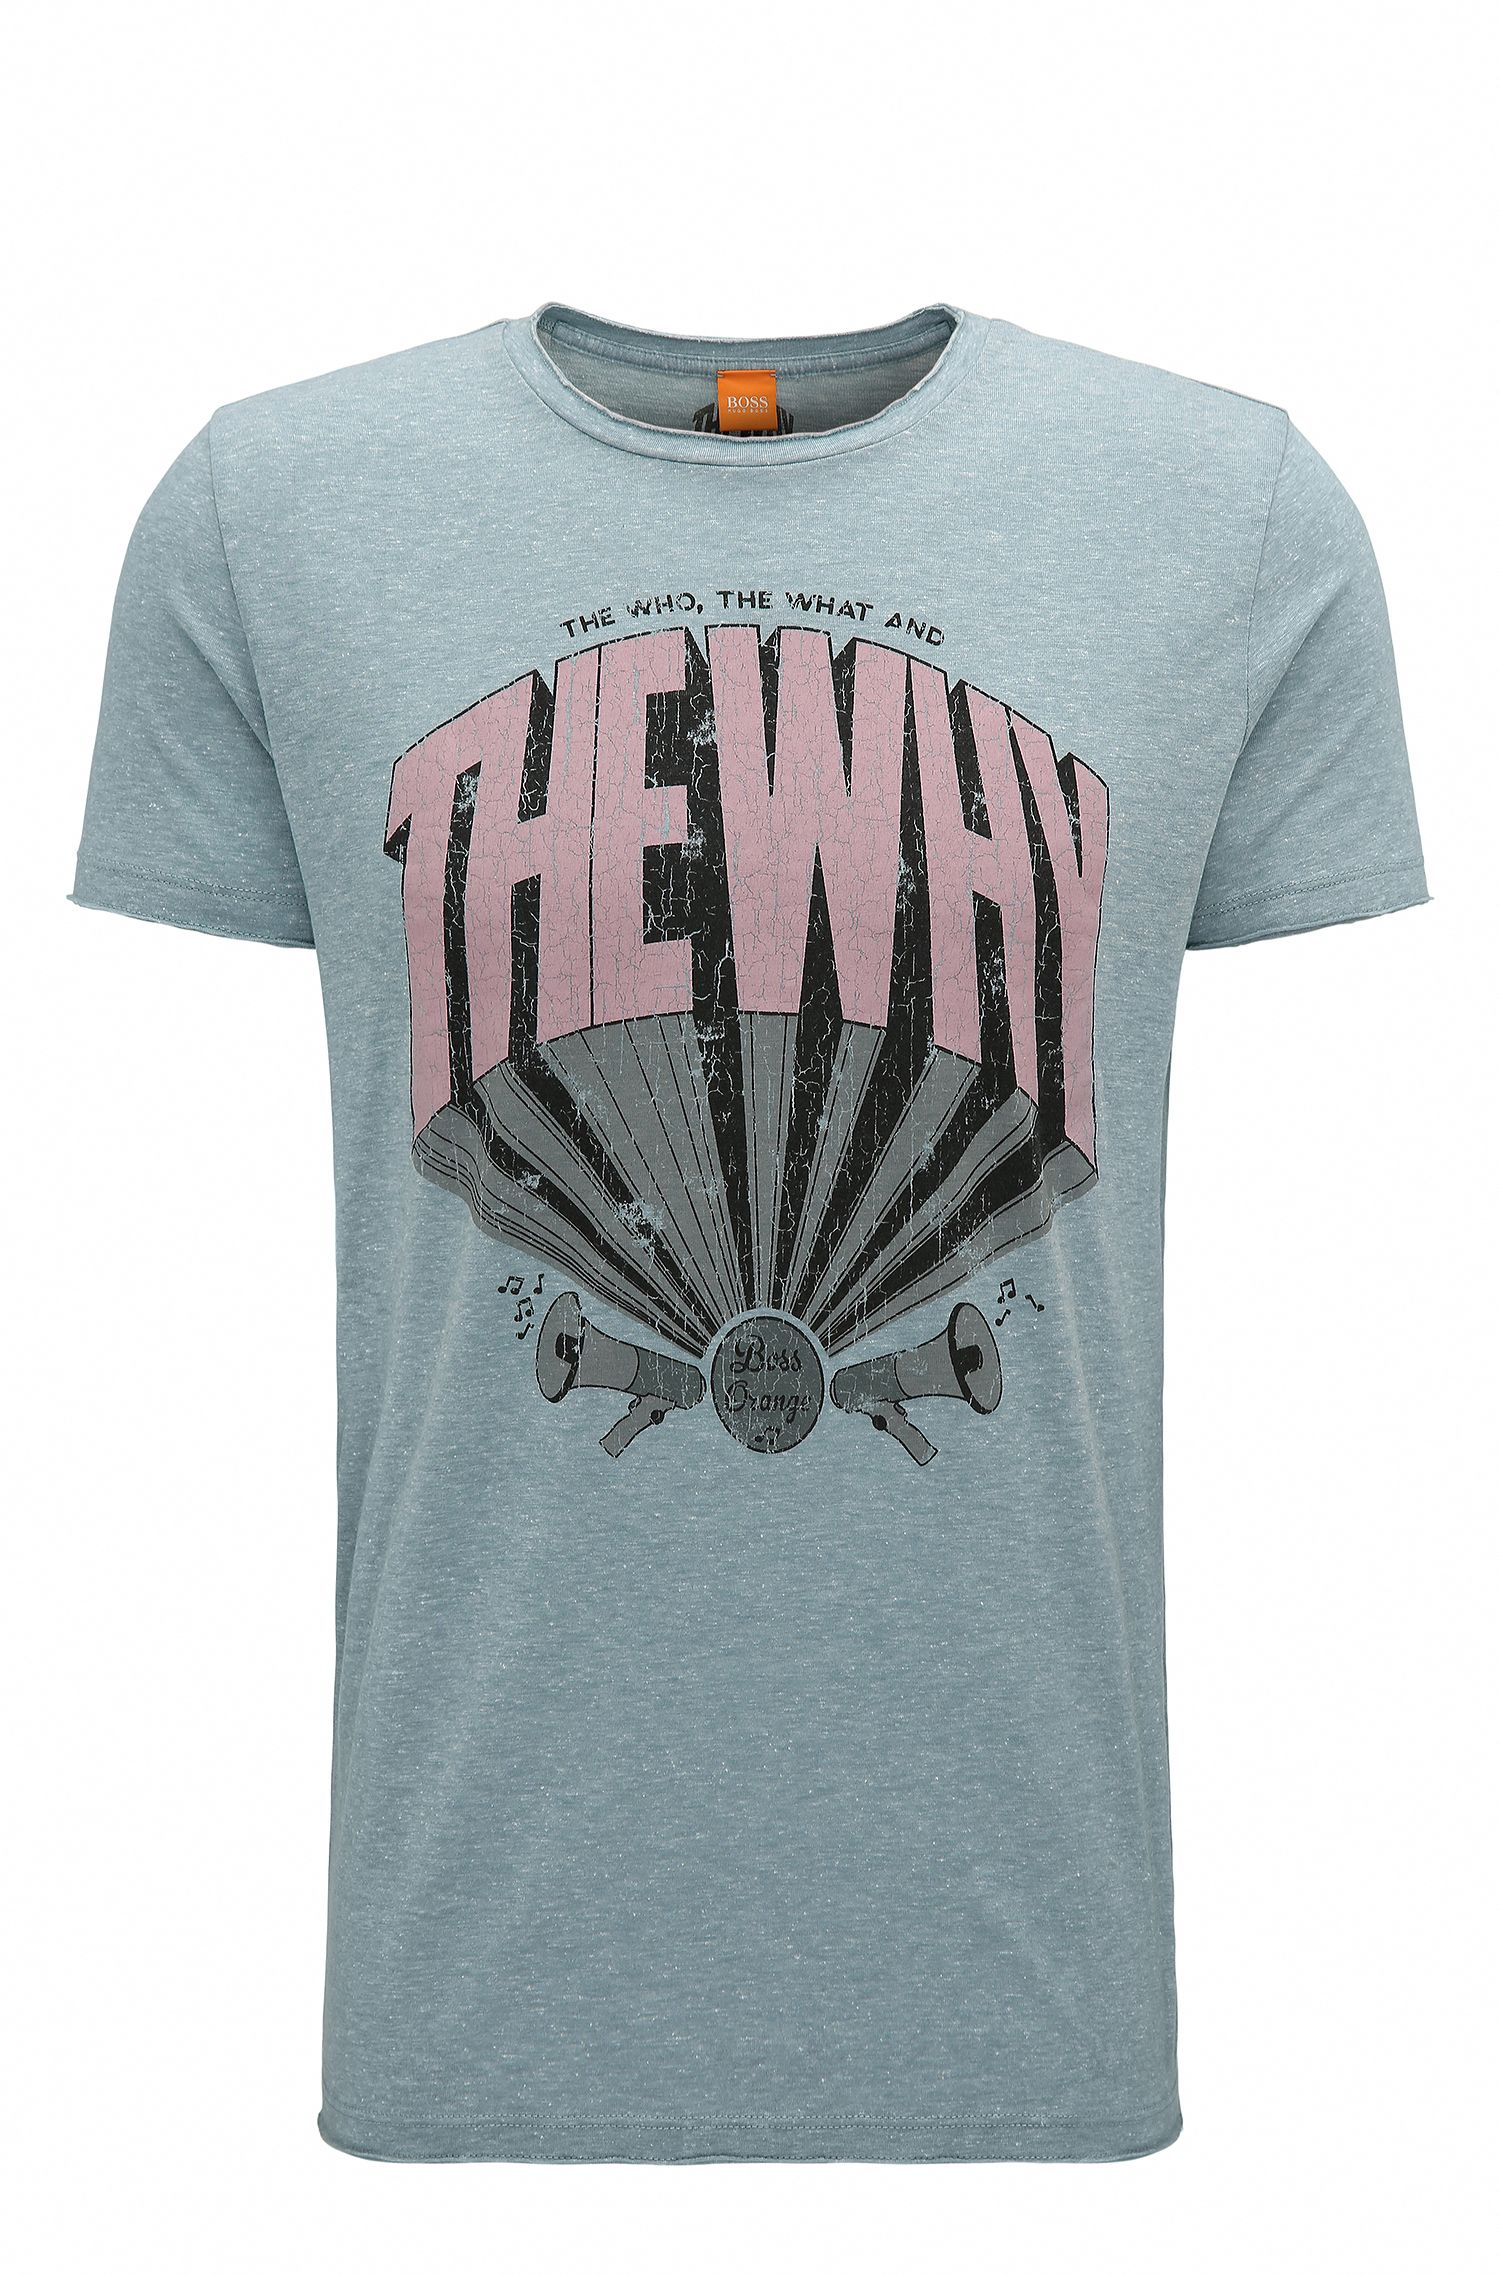 Cotton Blend Graphic T-Shirt | TheWhy